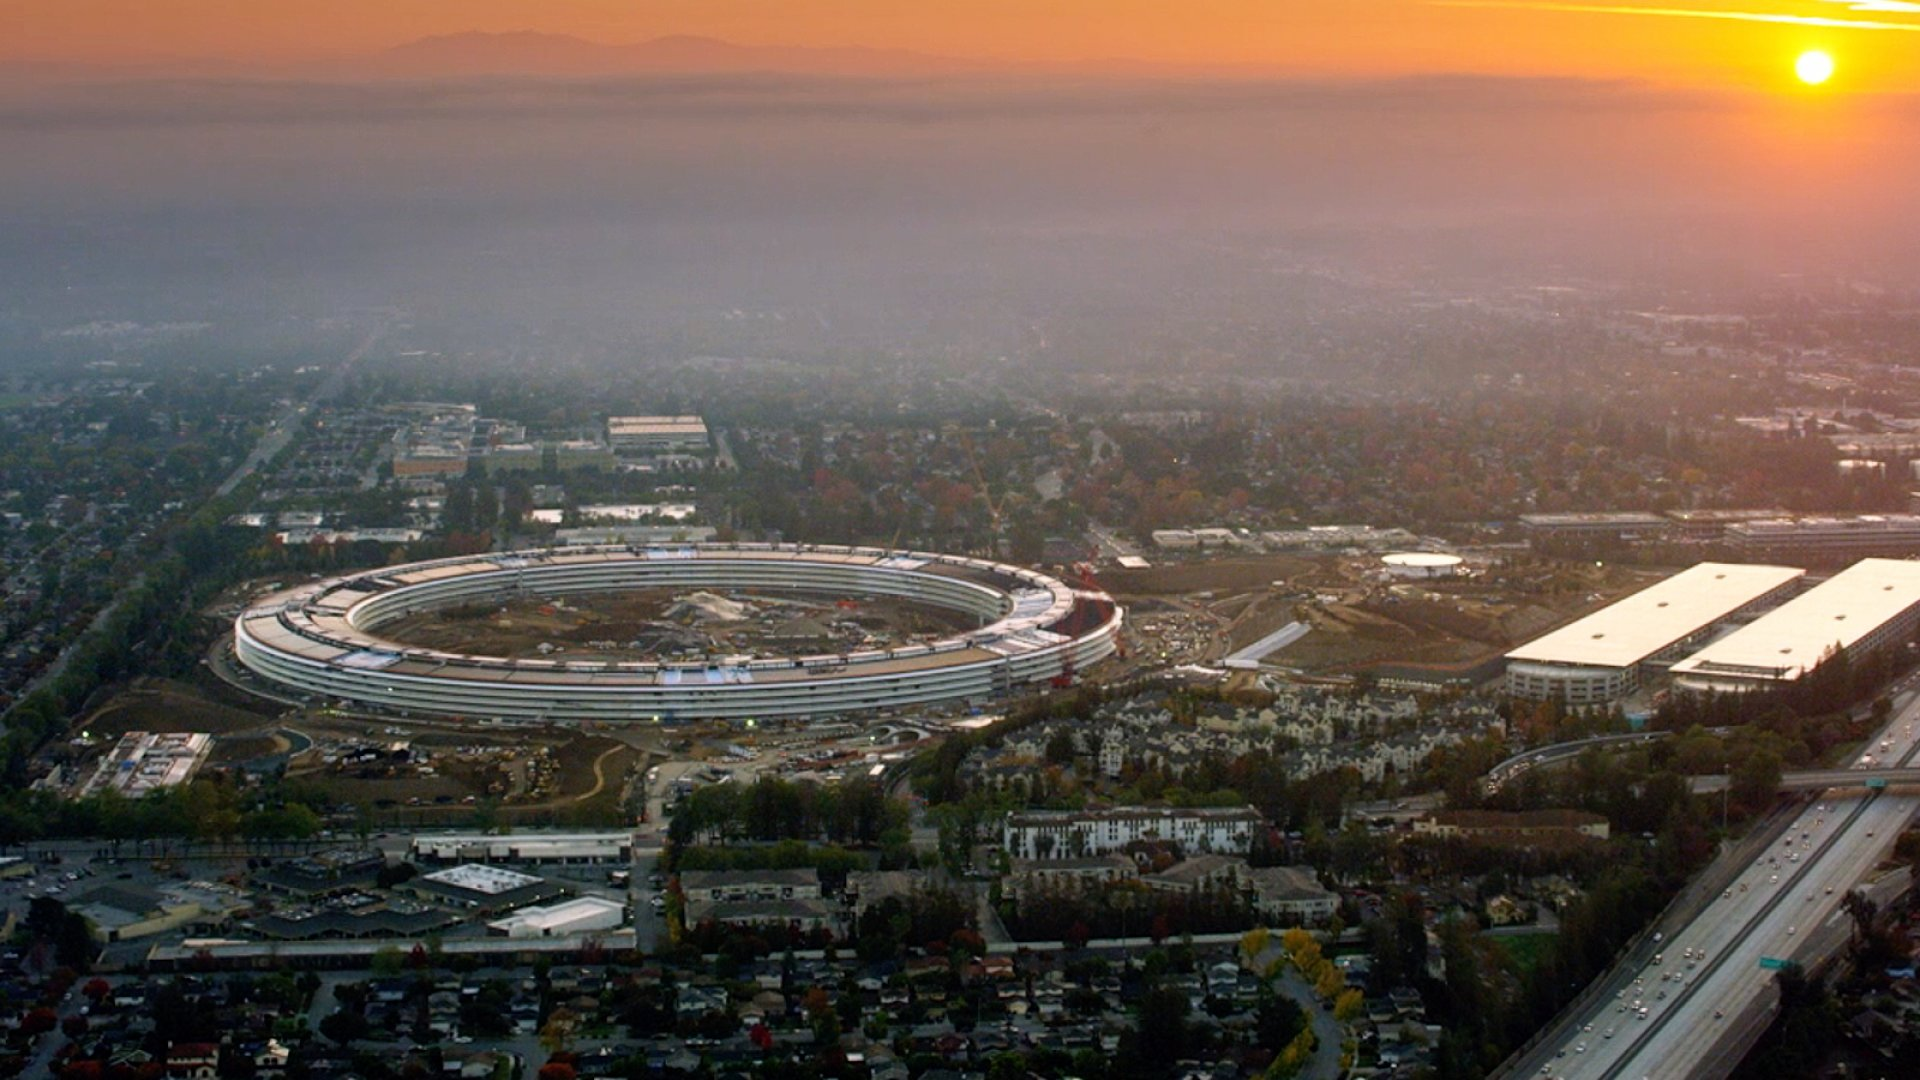 Apple's new headquarters in Cupertino, California.